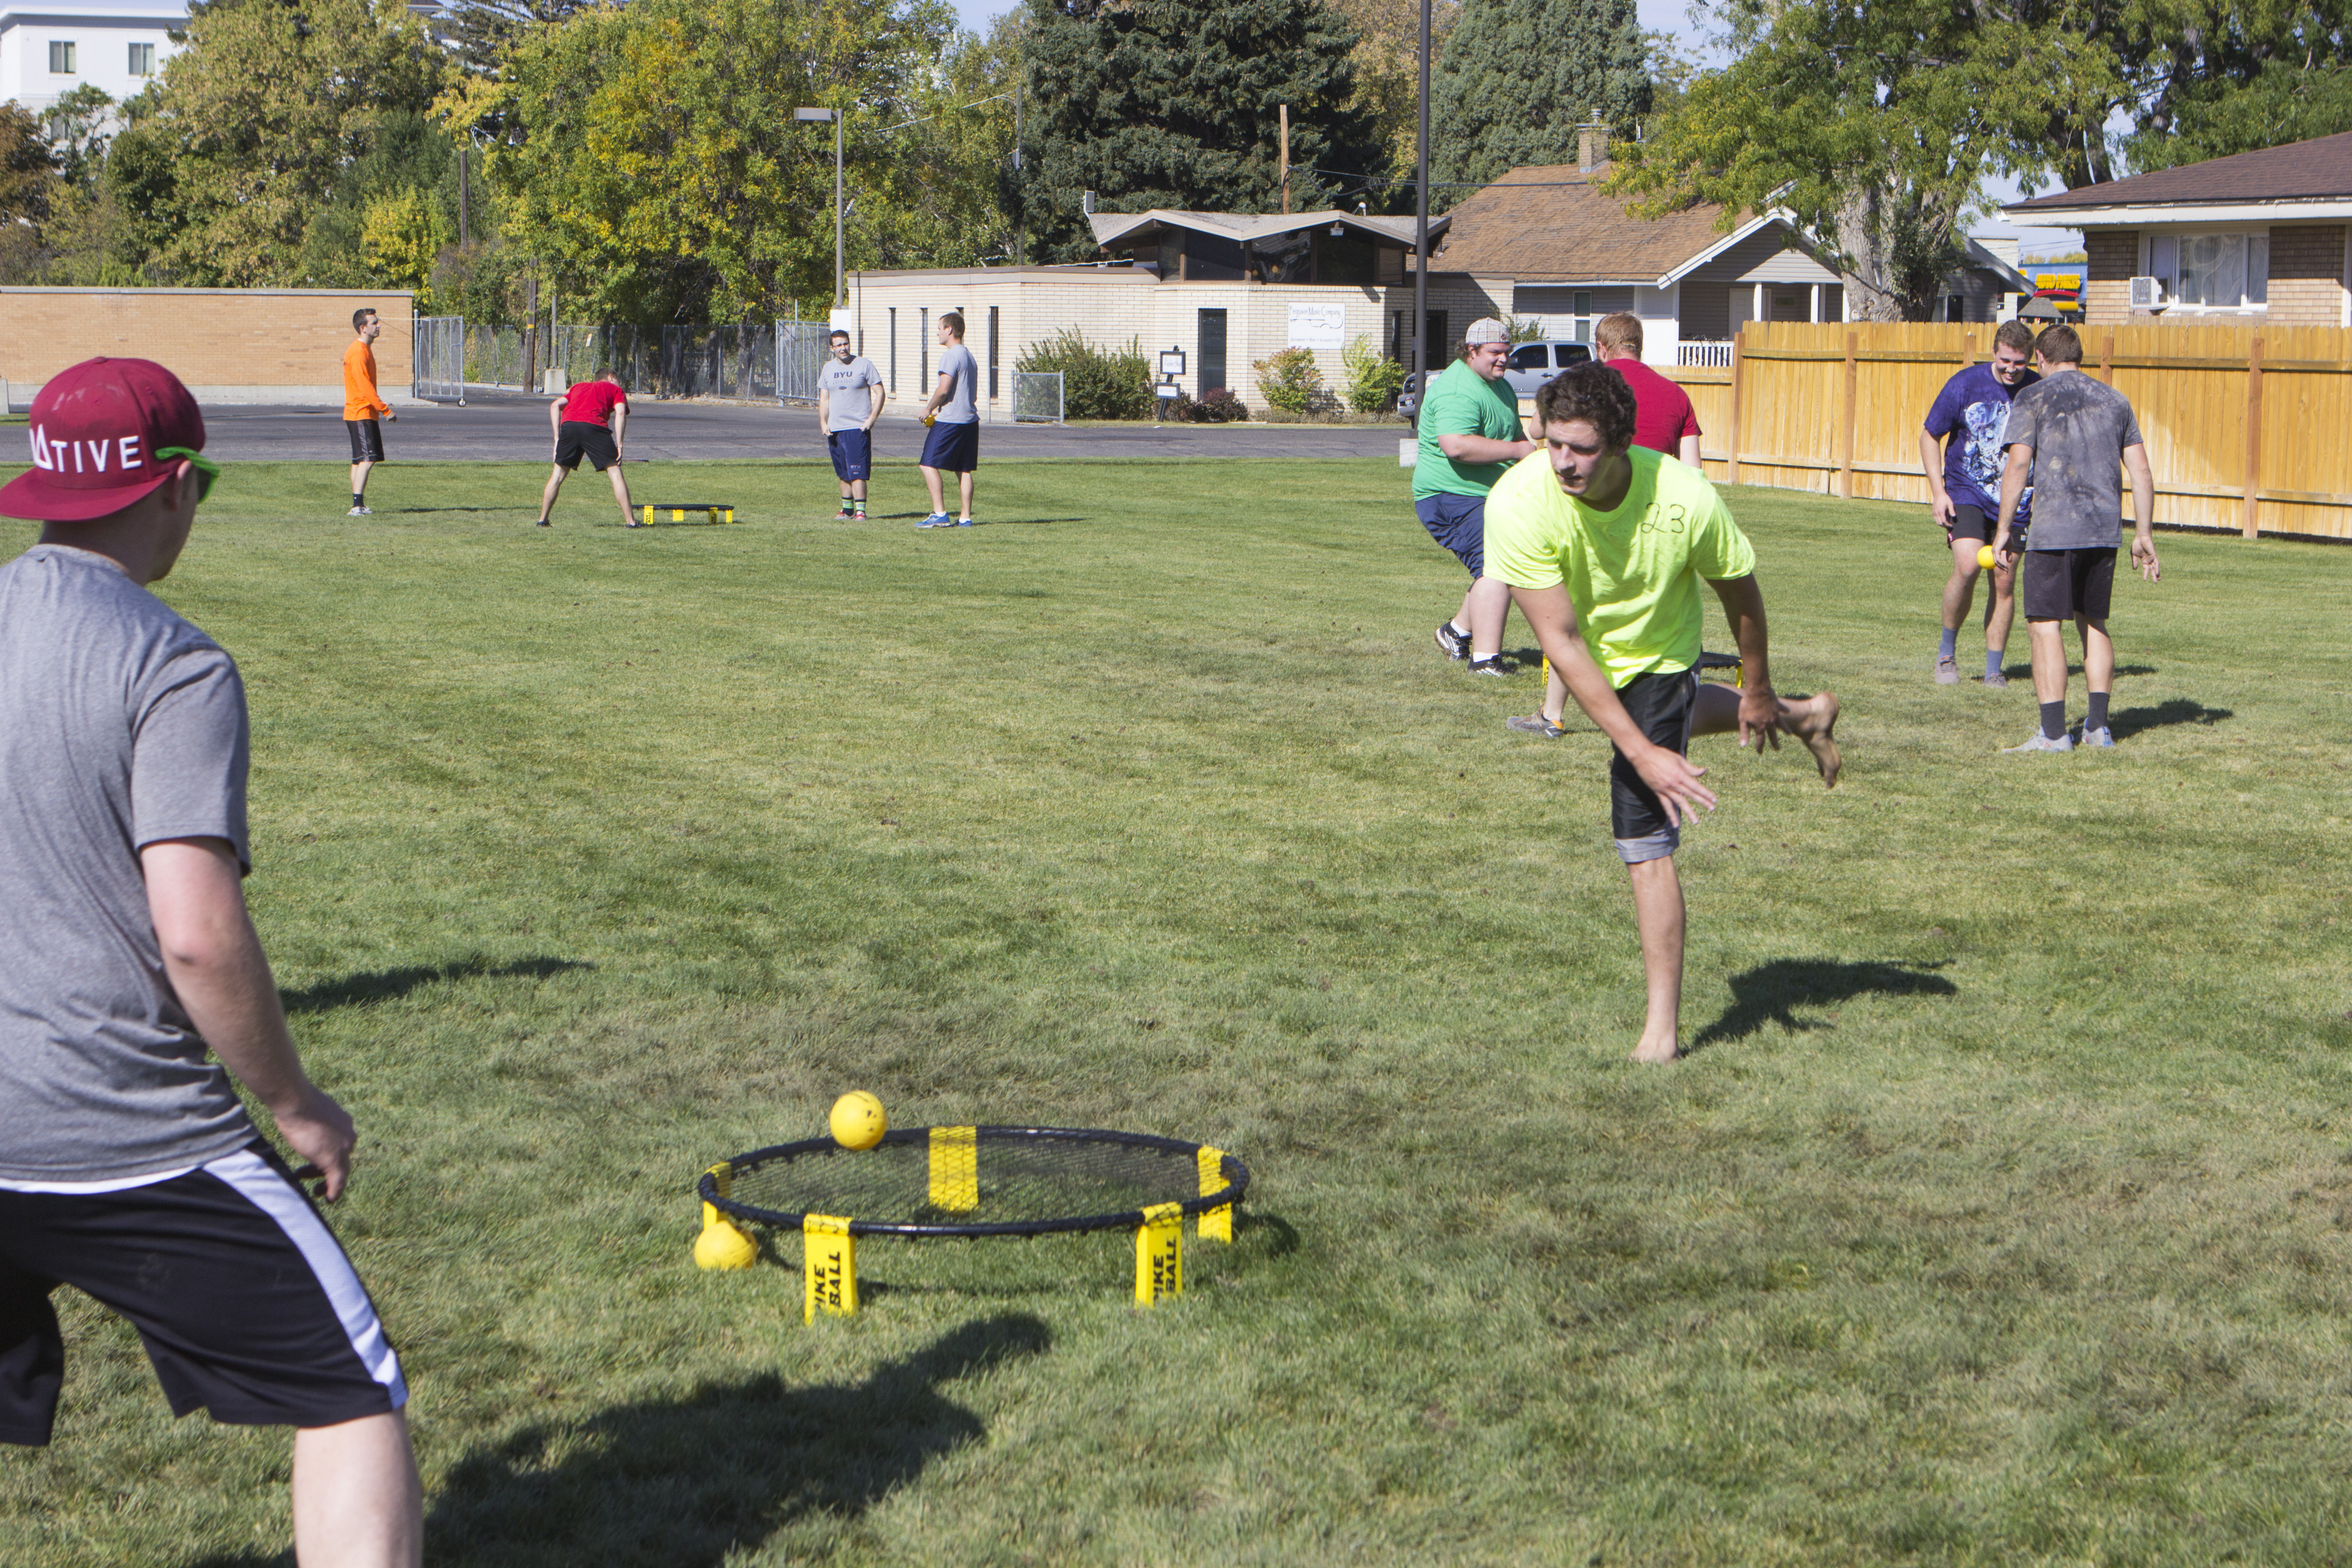 Spikeball serves Saturday sports' slate